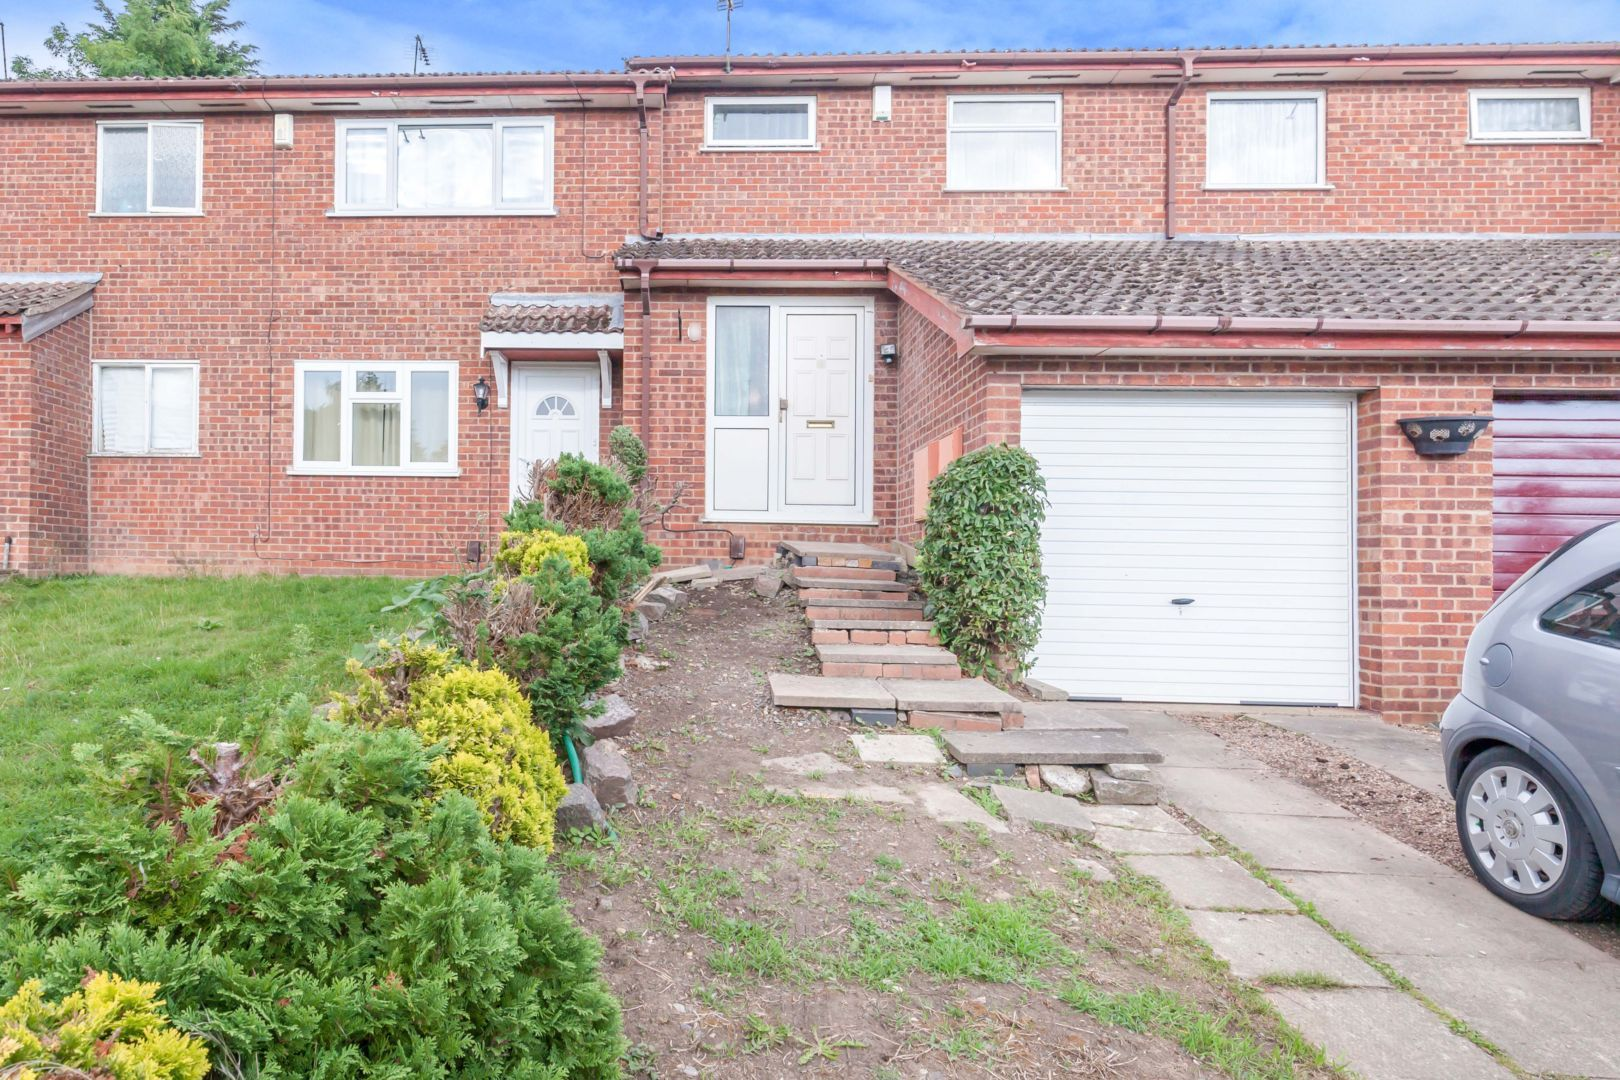 Property photo 1 of 13. Front